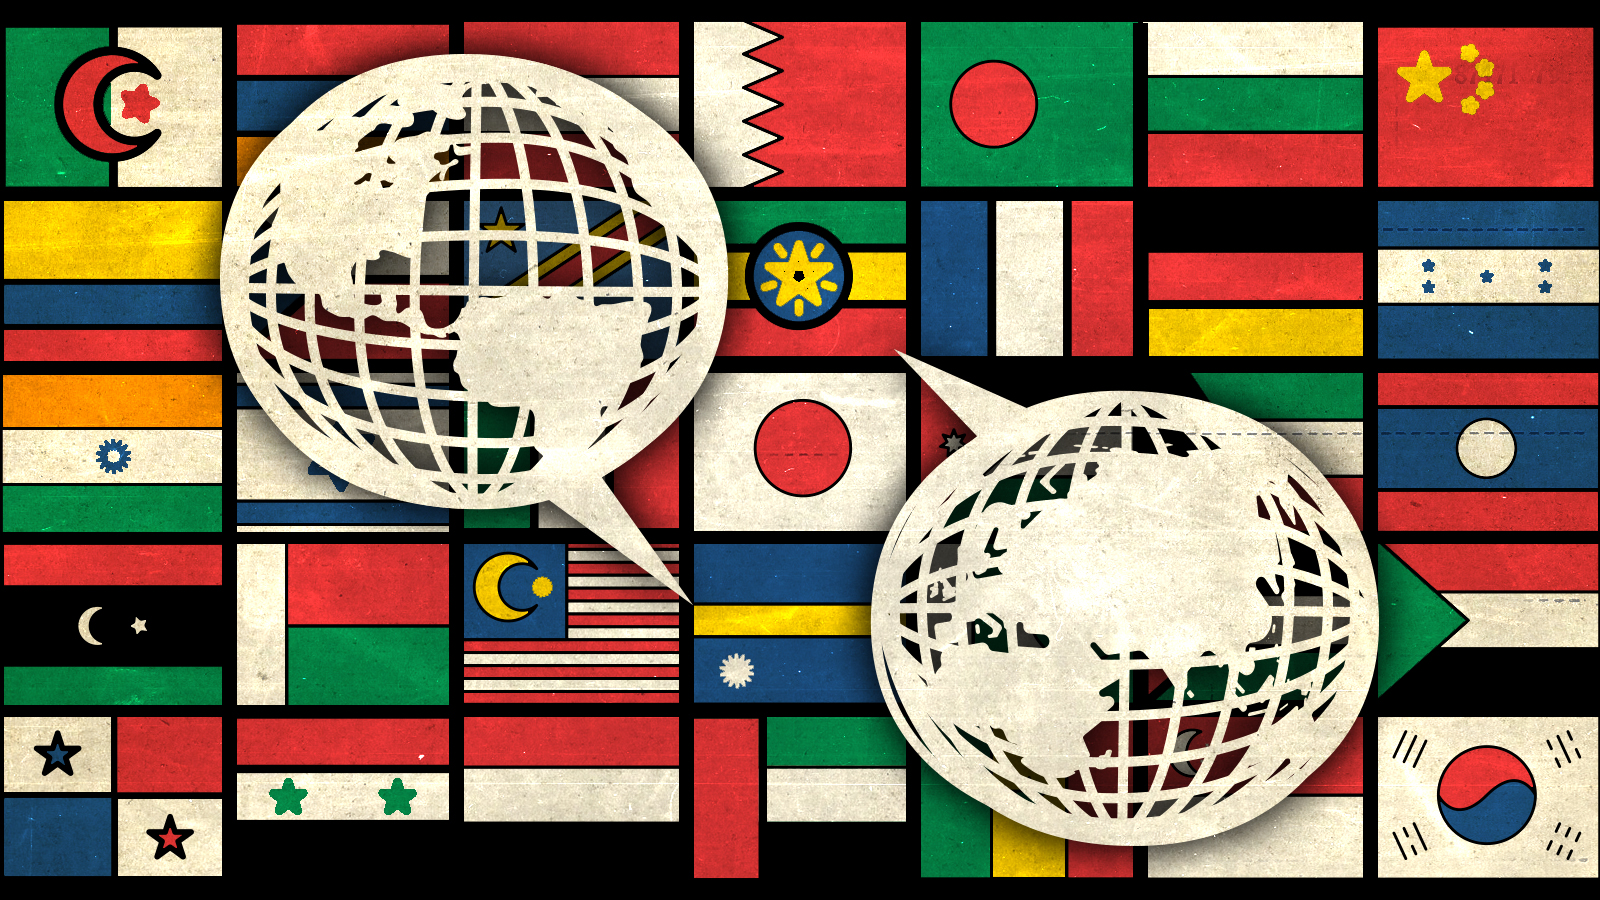 Photoillustration of flags from around the world and speech bubbles